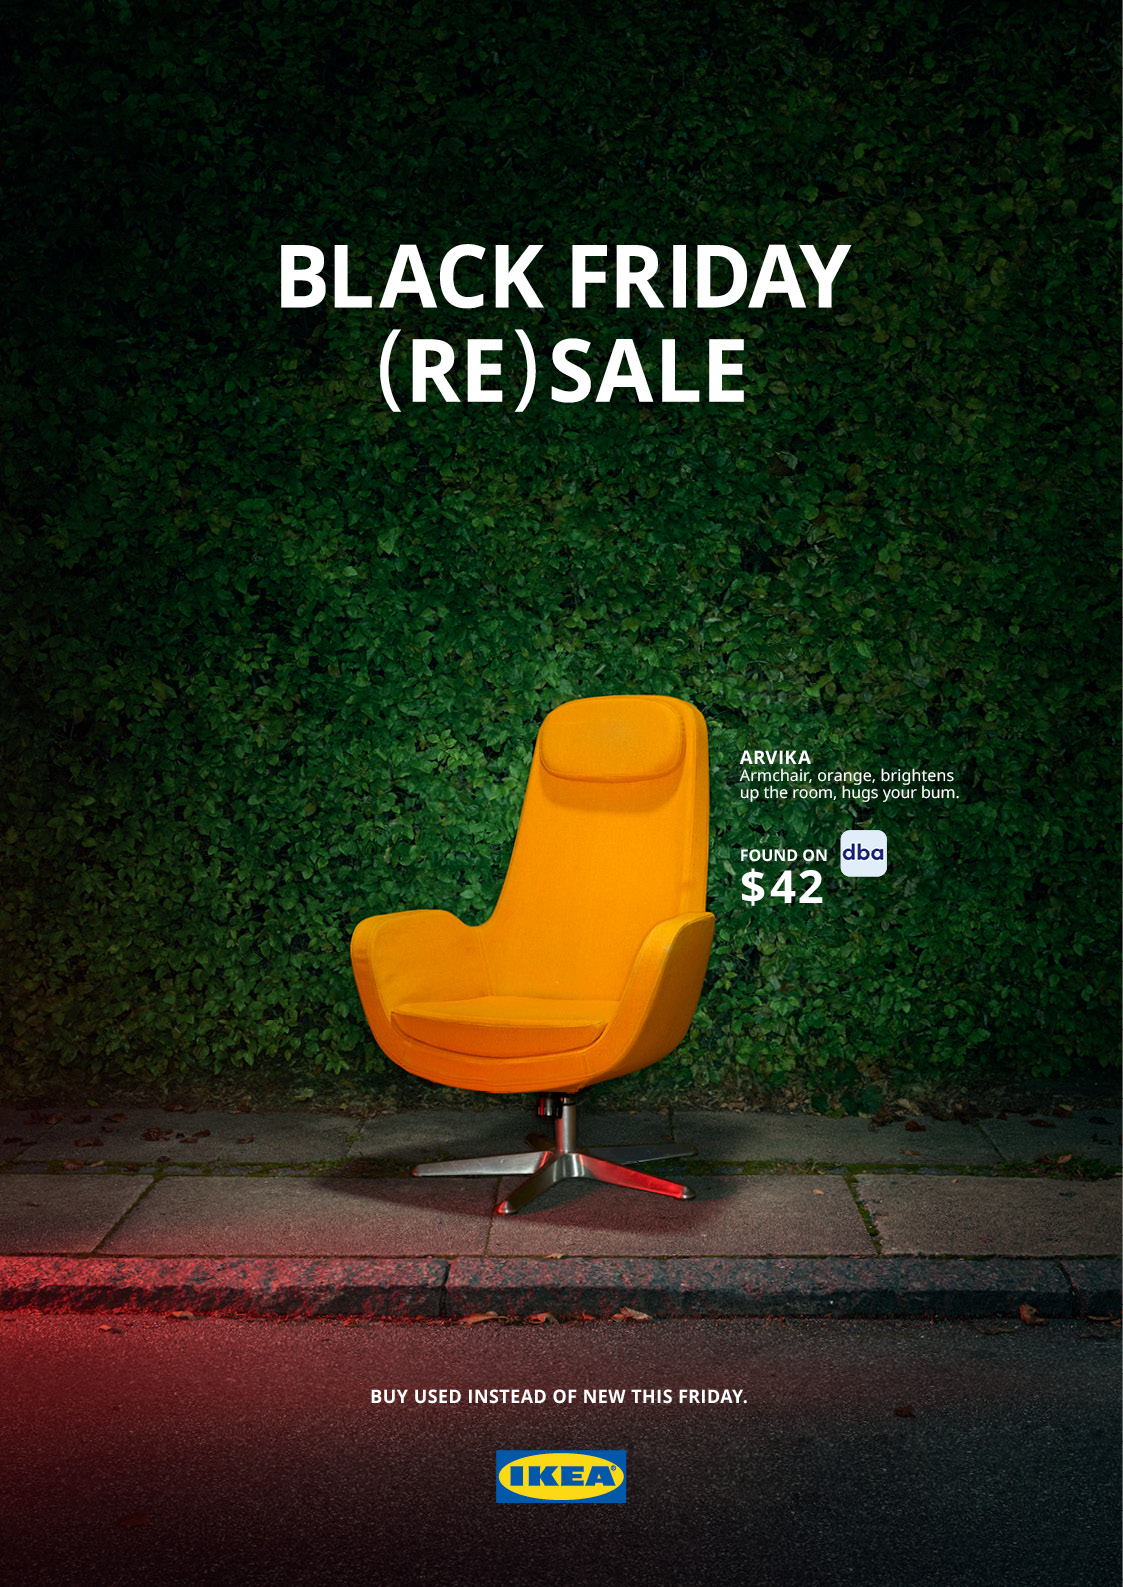 Outdoor Ad Ikea Black Friday Re Sale Arvika